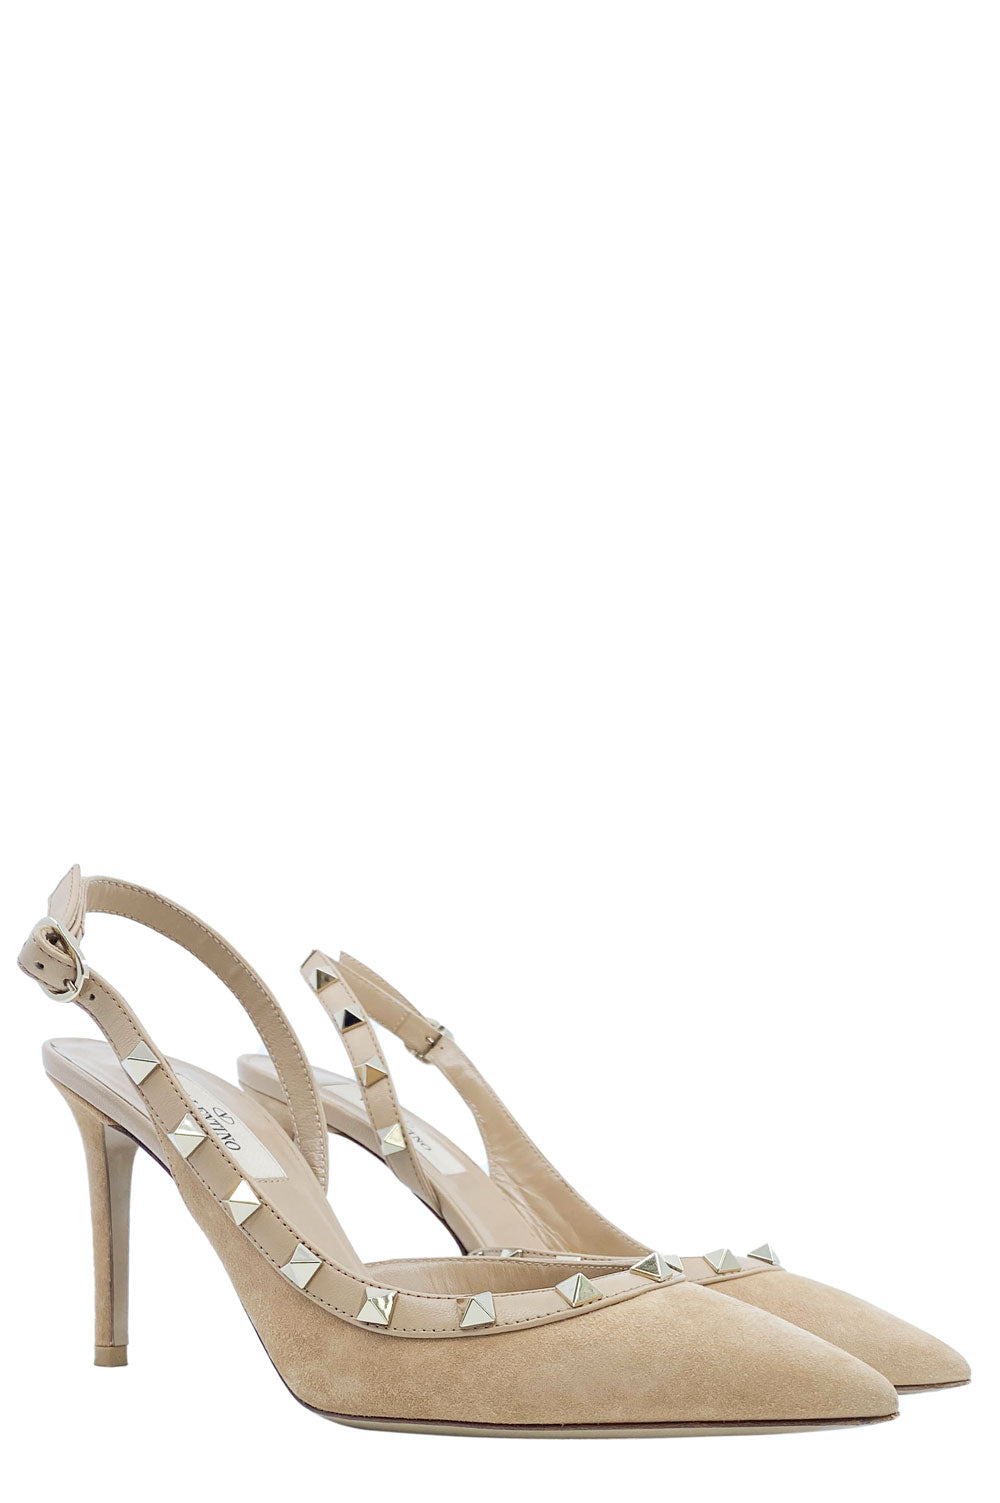 VALENTINO Rockstud Heels Suede Leather Camel